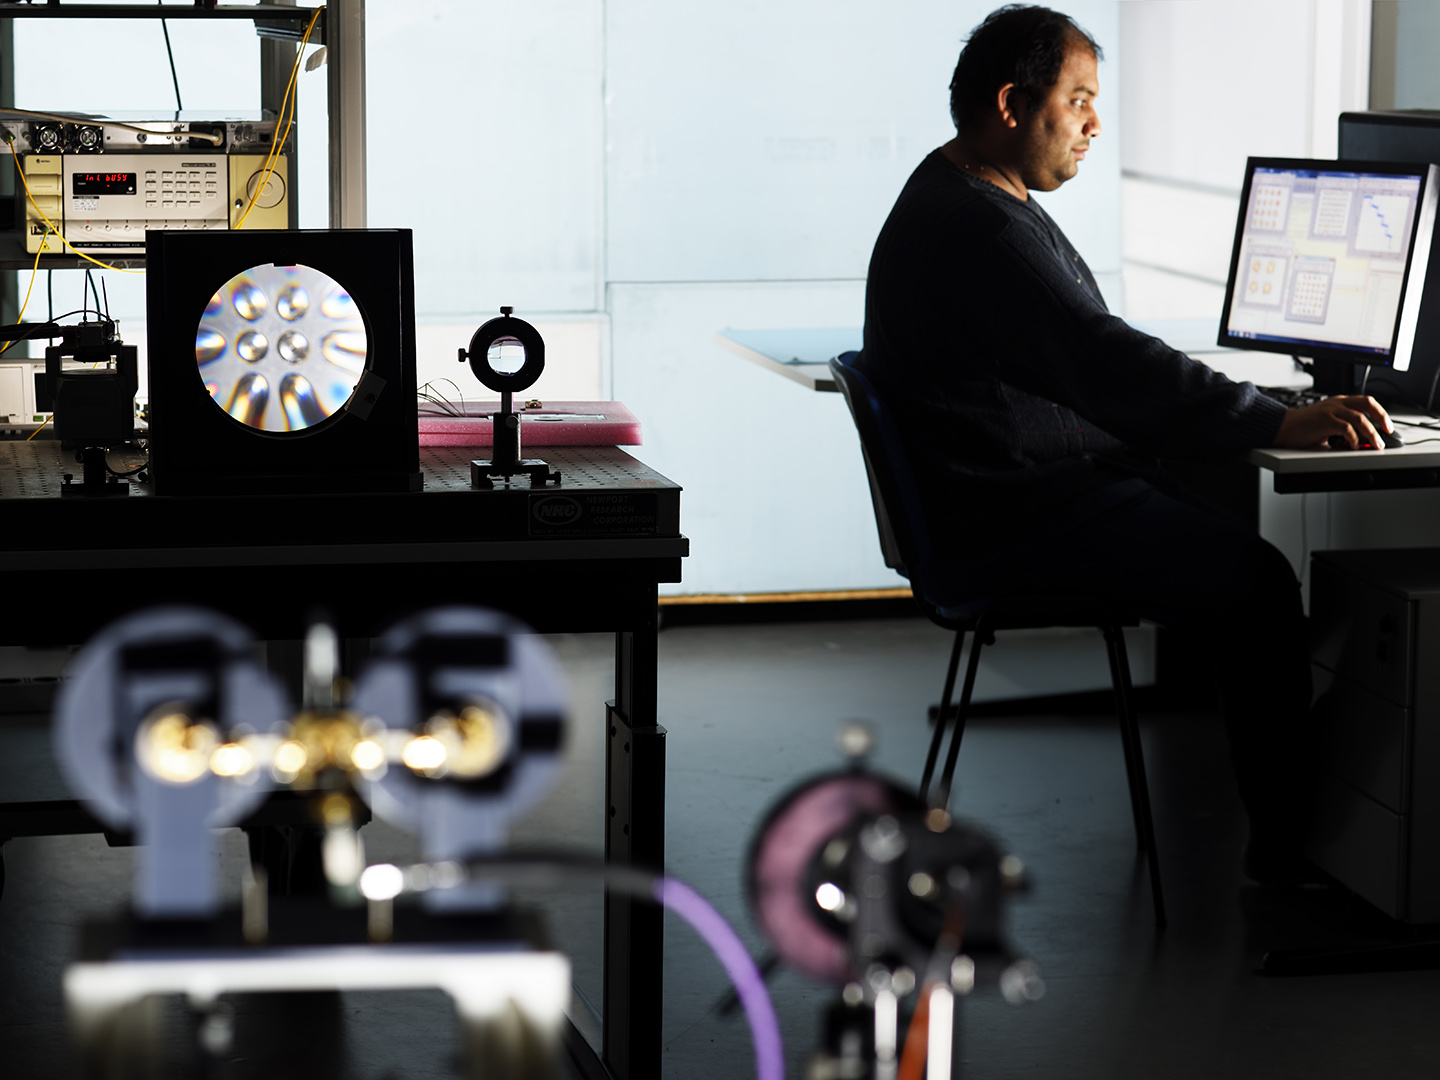 """Center for Wireless Technology Eindhoven: BROWSE project - """"Beam-steered Reconfigurable Optical-wireless System"""" with PhD Amir Khalid, Electrical Engineering, Eindhoven University of Technology"""